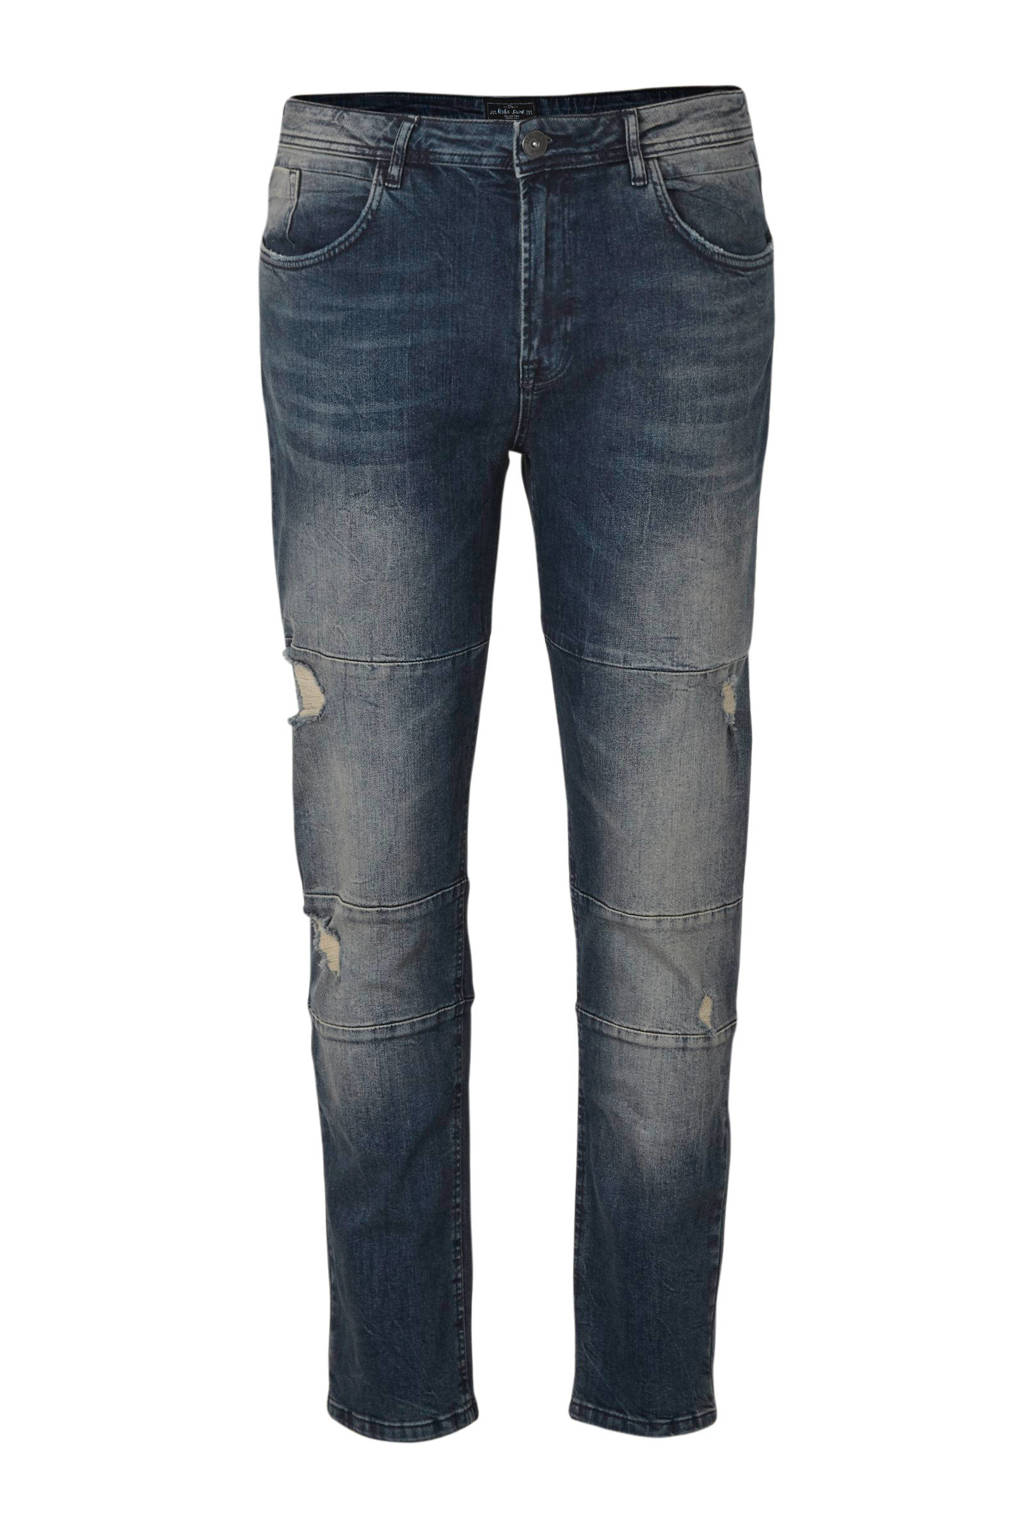 URBN SAINT regular fit jeans Geneve Cut Destroy met slijtage malgony blue 327, Malgony Blue 327